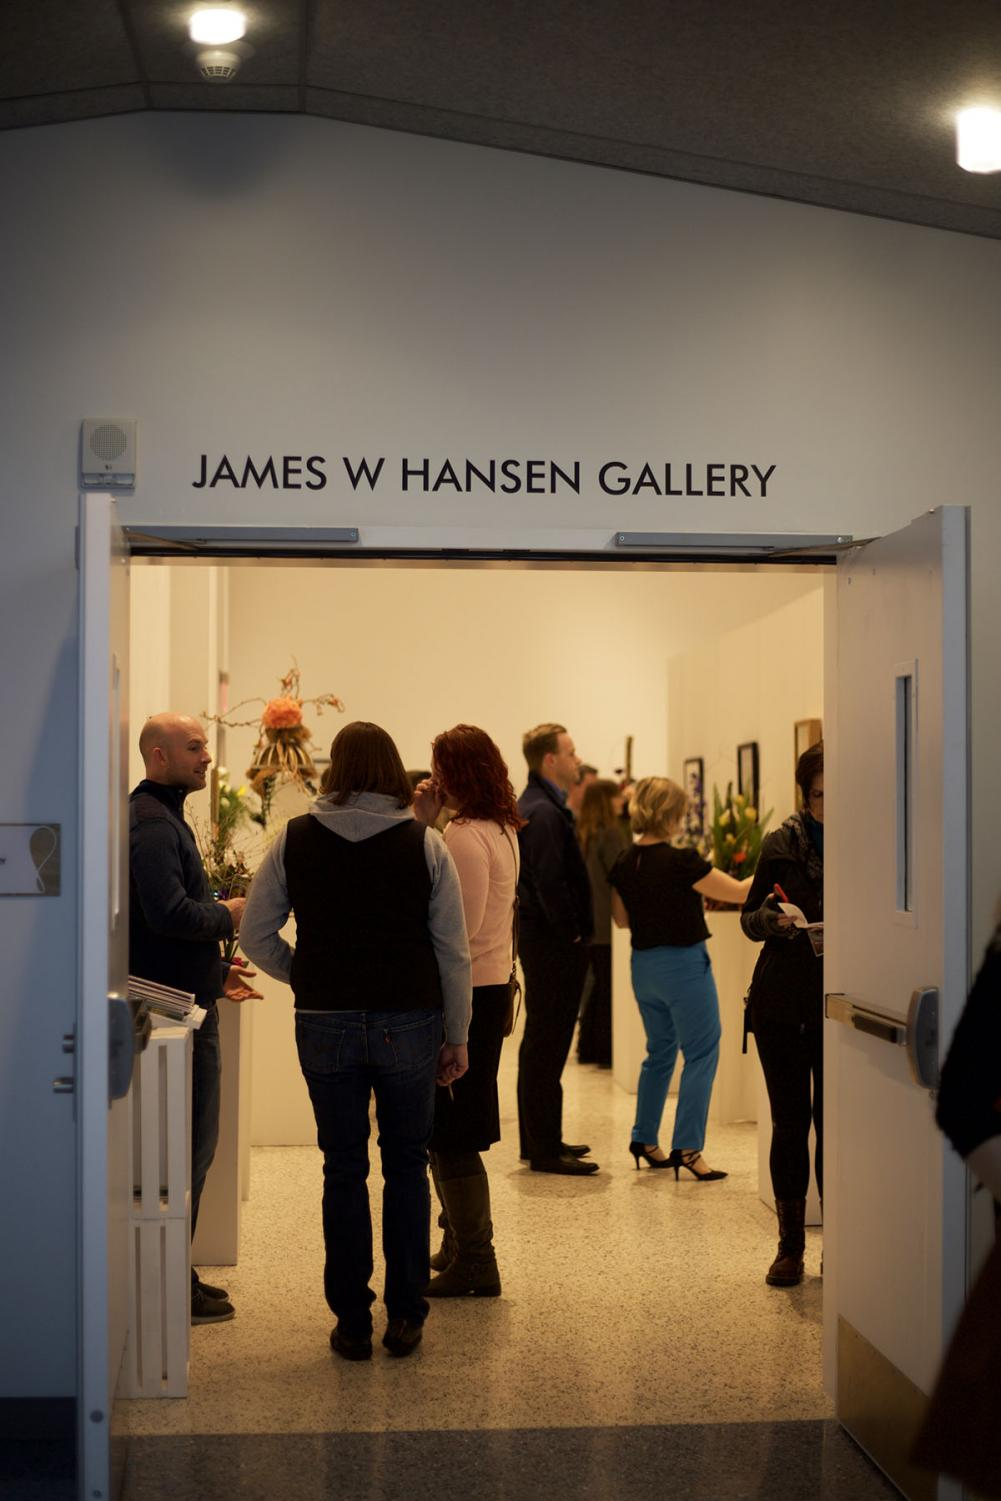 James W Hansen Gallery welcomes a warm beginning of spring and says goodbye to the cold winter season.